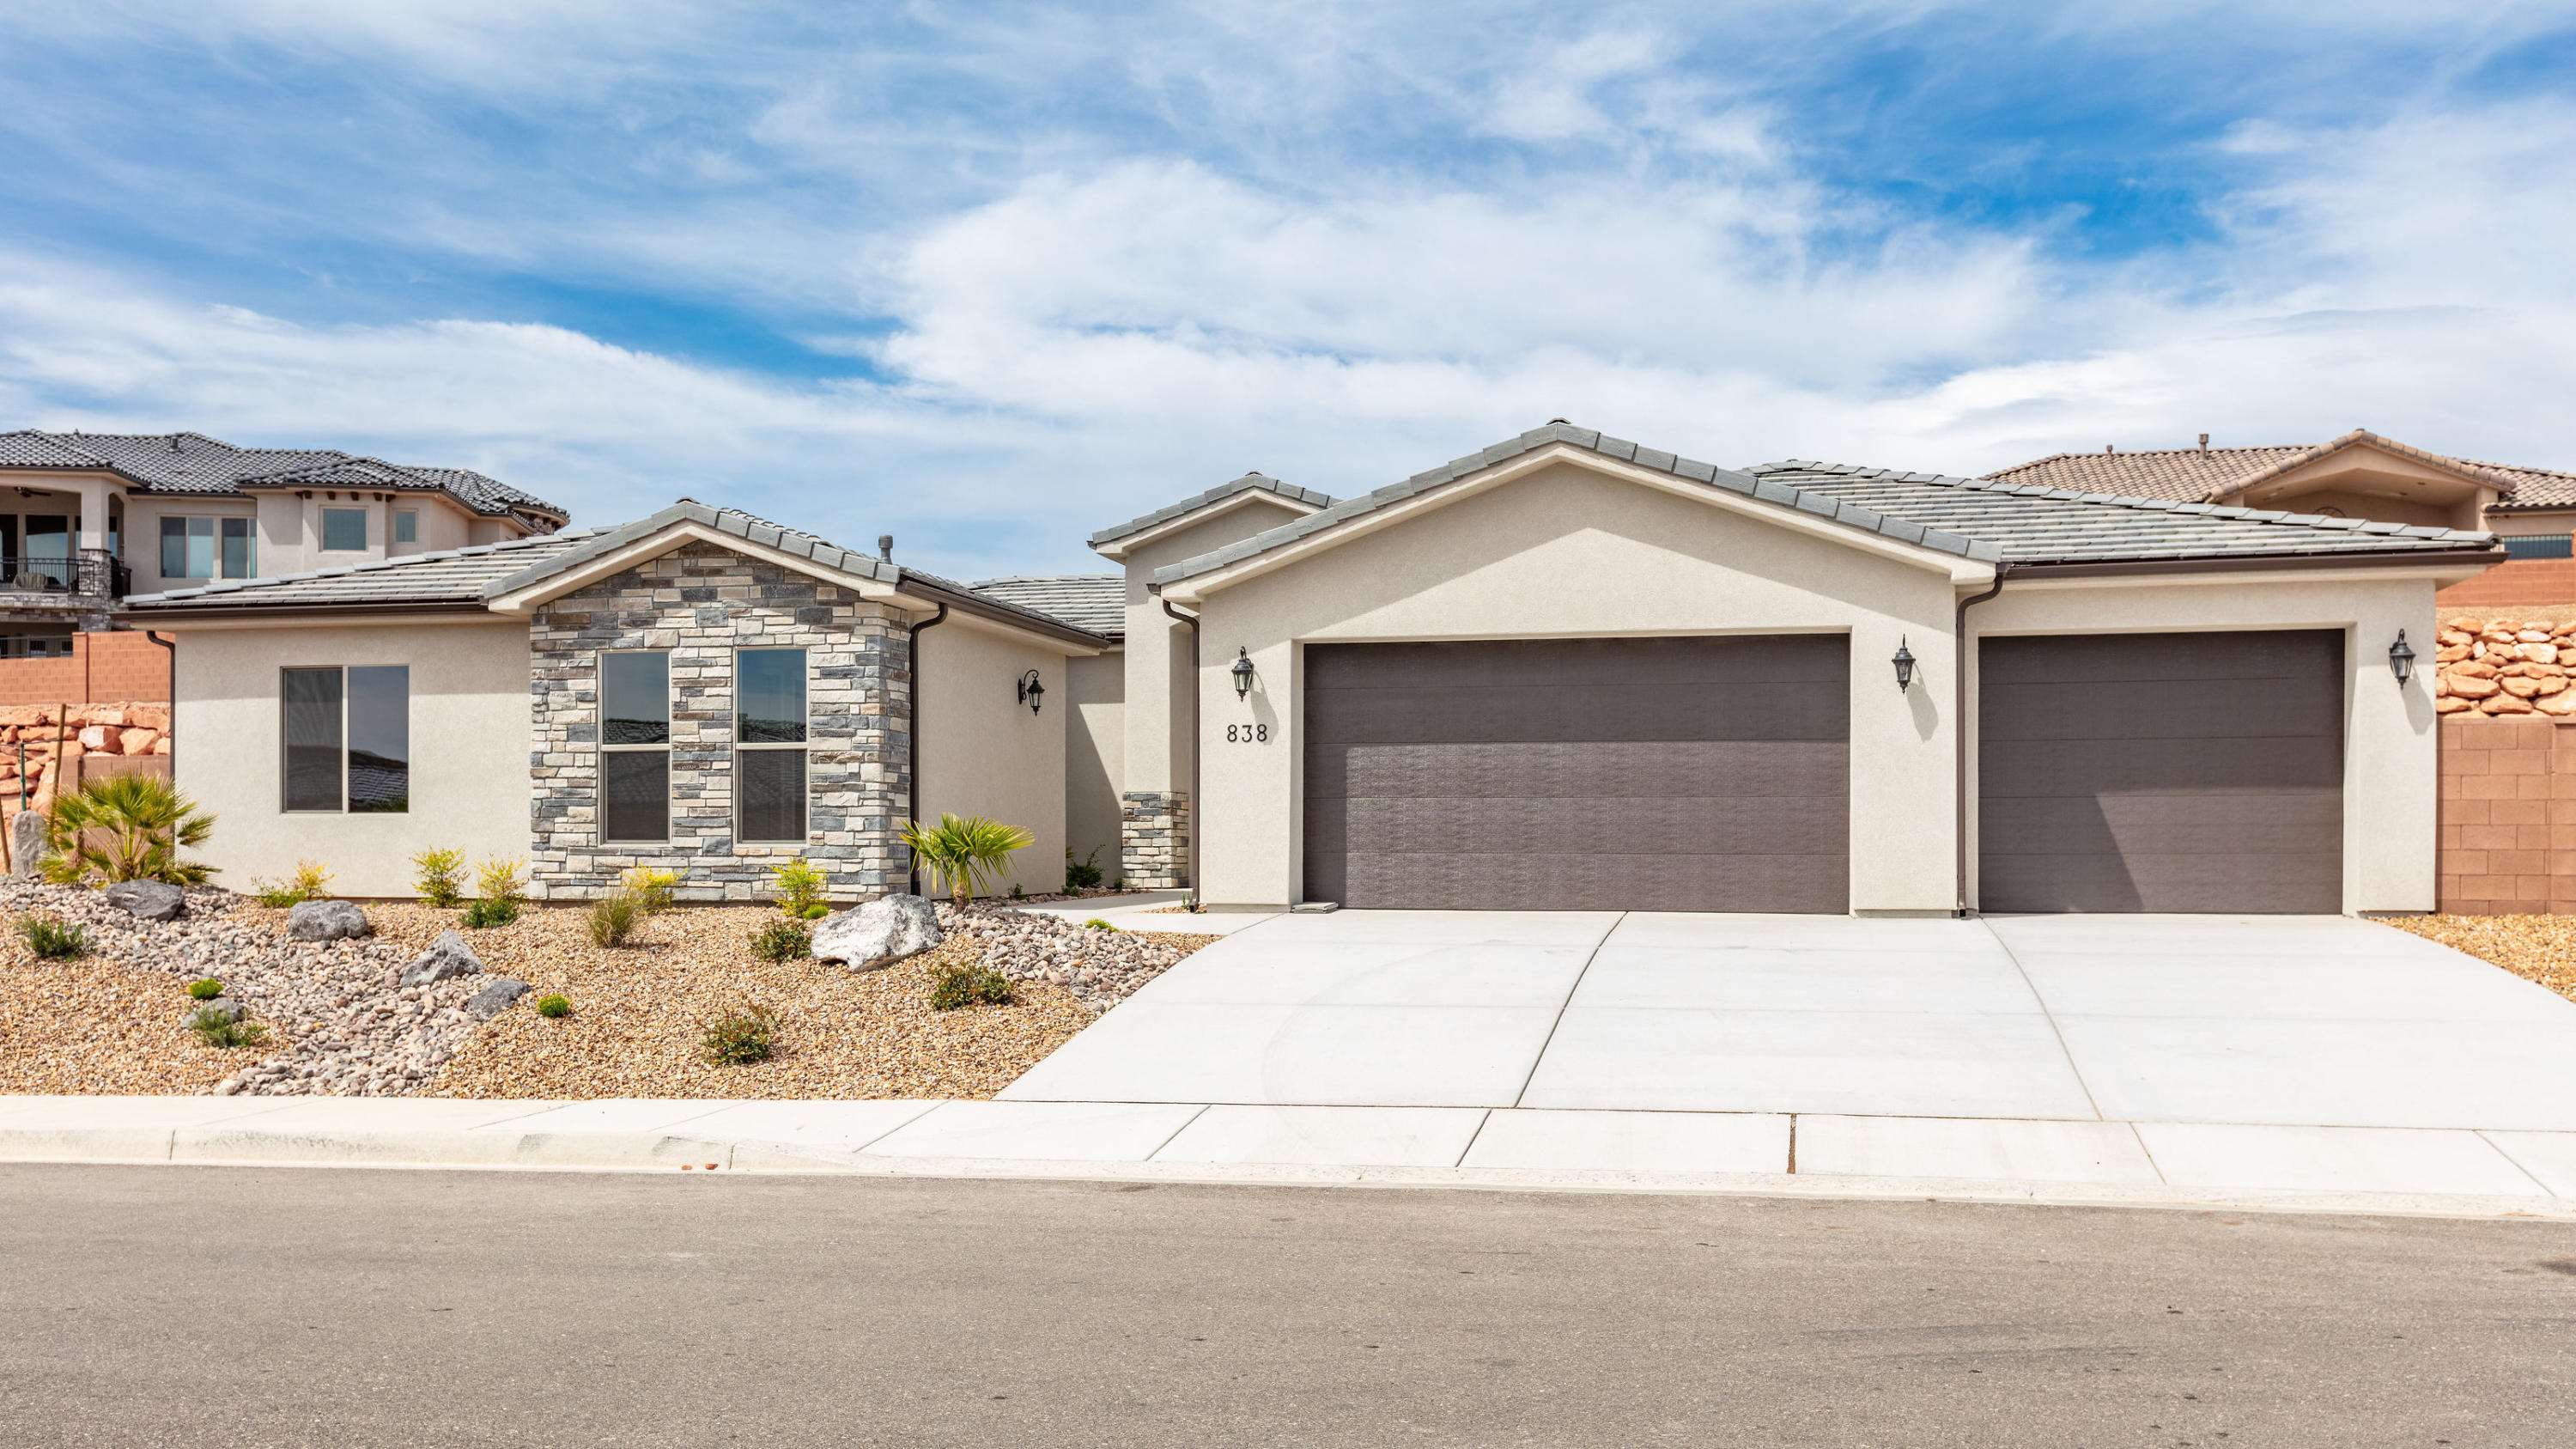 838 W Sunset Mesa Dr, Washington Ut 84780